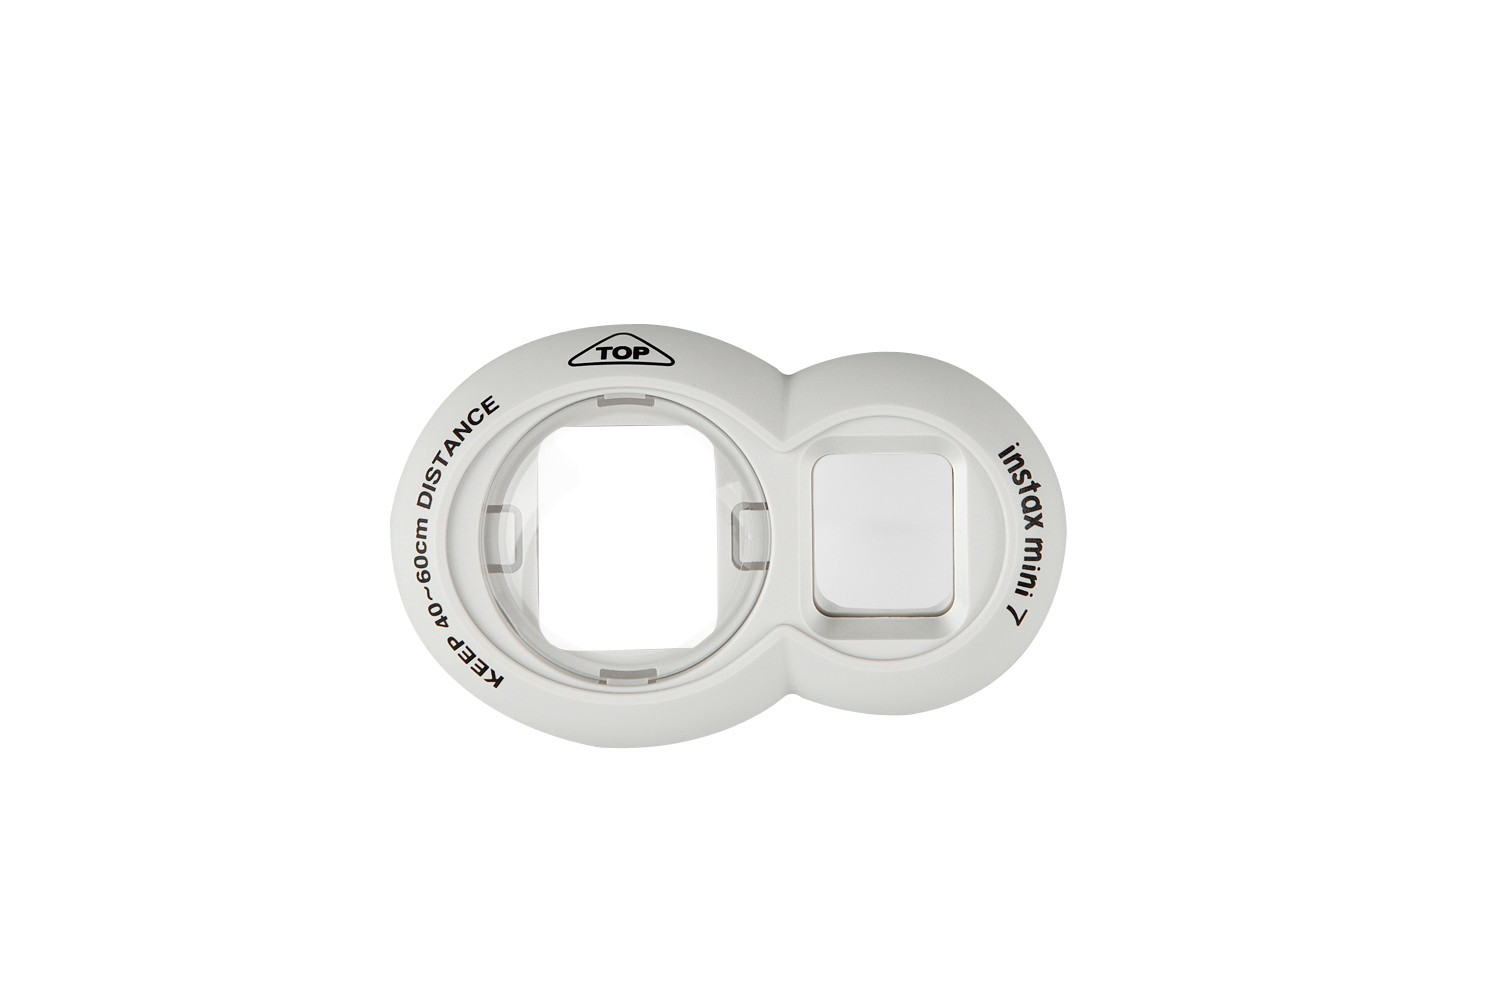 Fujifilm Close Up Lens Attachment